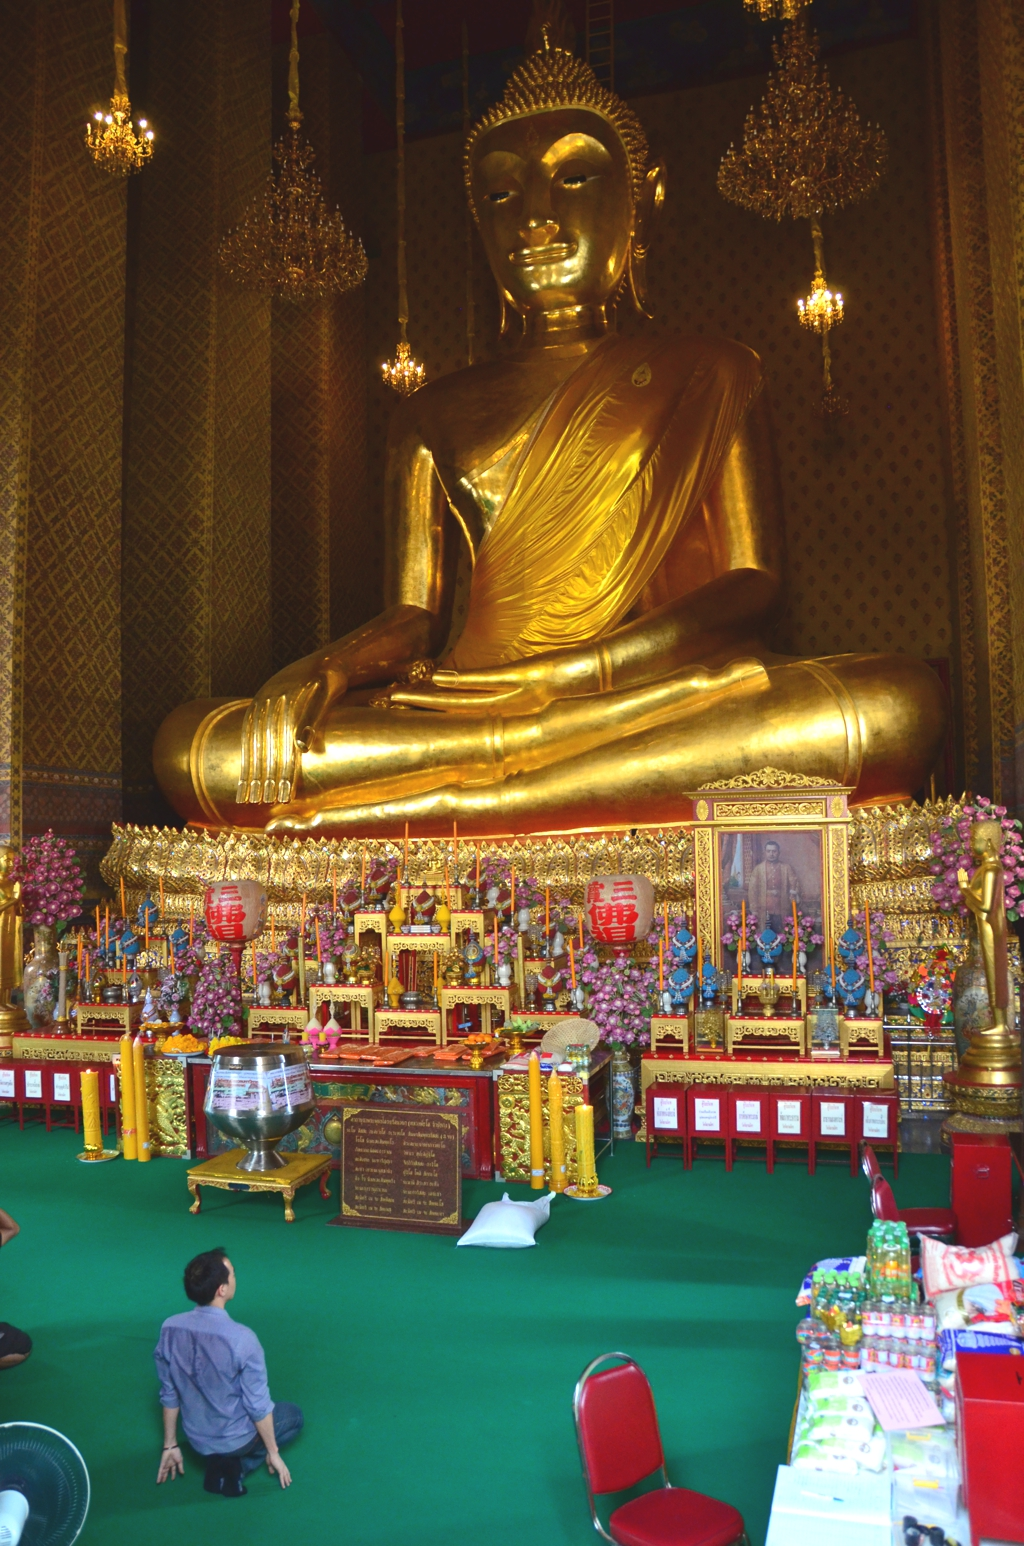 The Buddha image at Wat Kalayanamitr isn't very different from those you find elsewhere in Bangkok, but you're almost guaranteed to be the only Westerner here